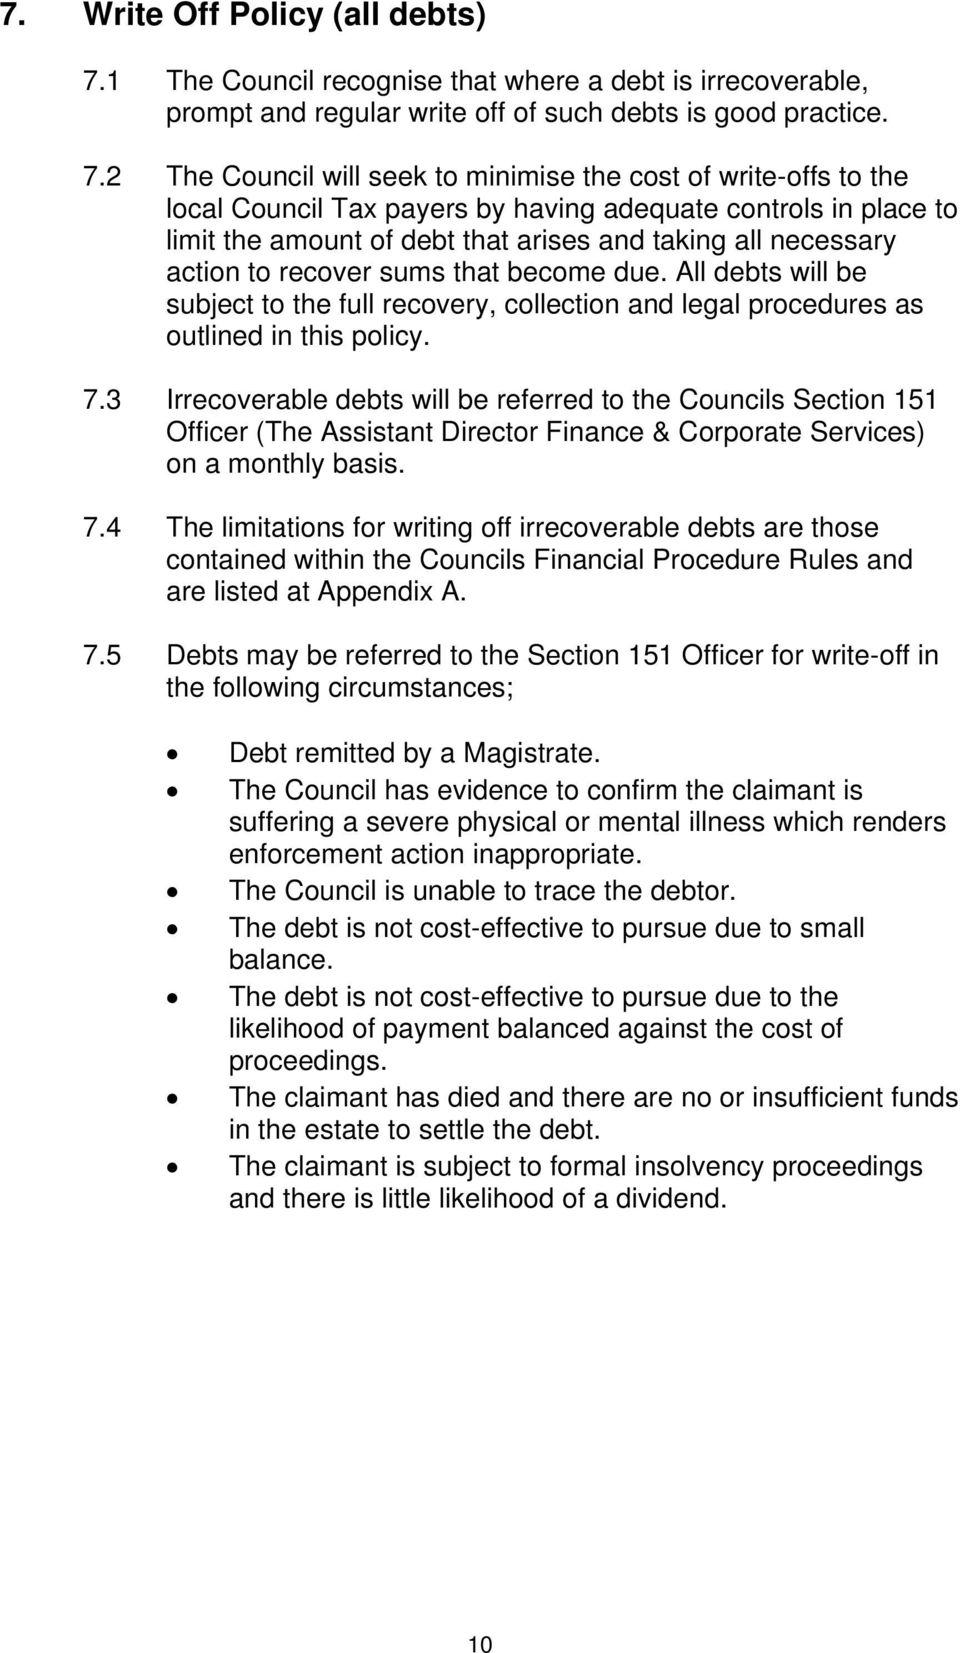 2 The Council will seek to minimise the cost of write-offs to the local Council Tax payers by having adequate controls in place to limit the amount of debt that arises and taking all necessary action